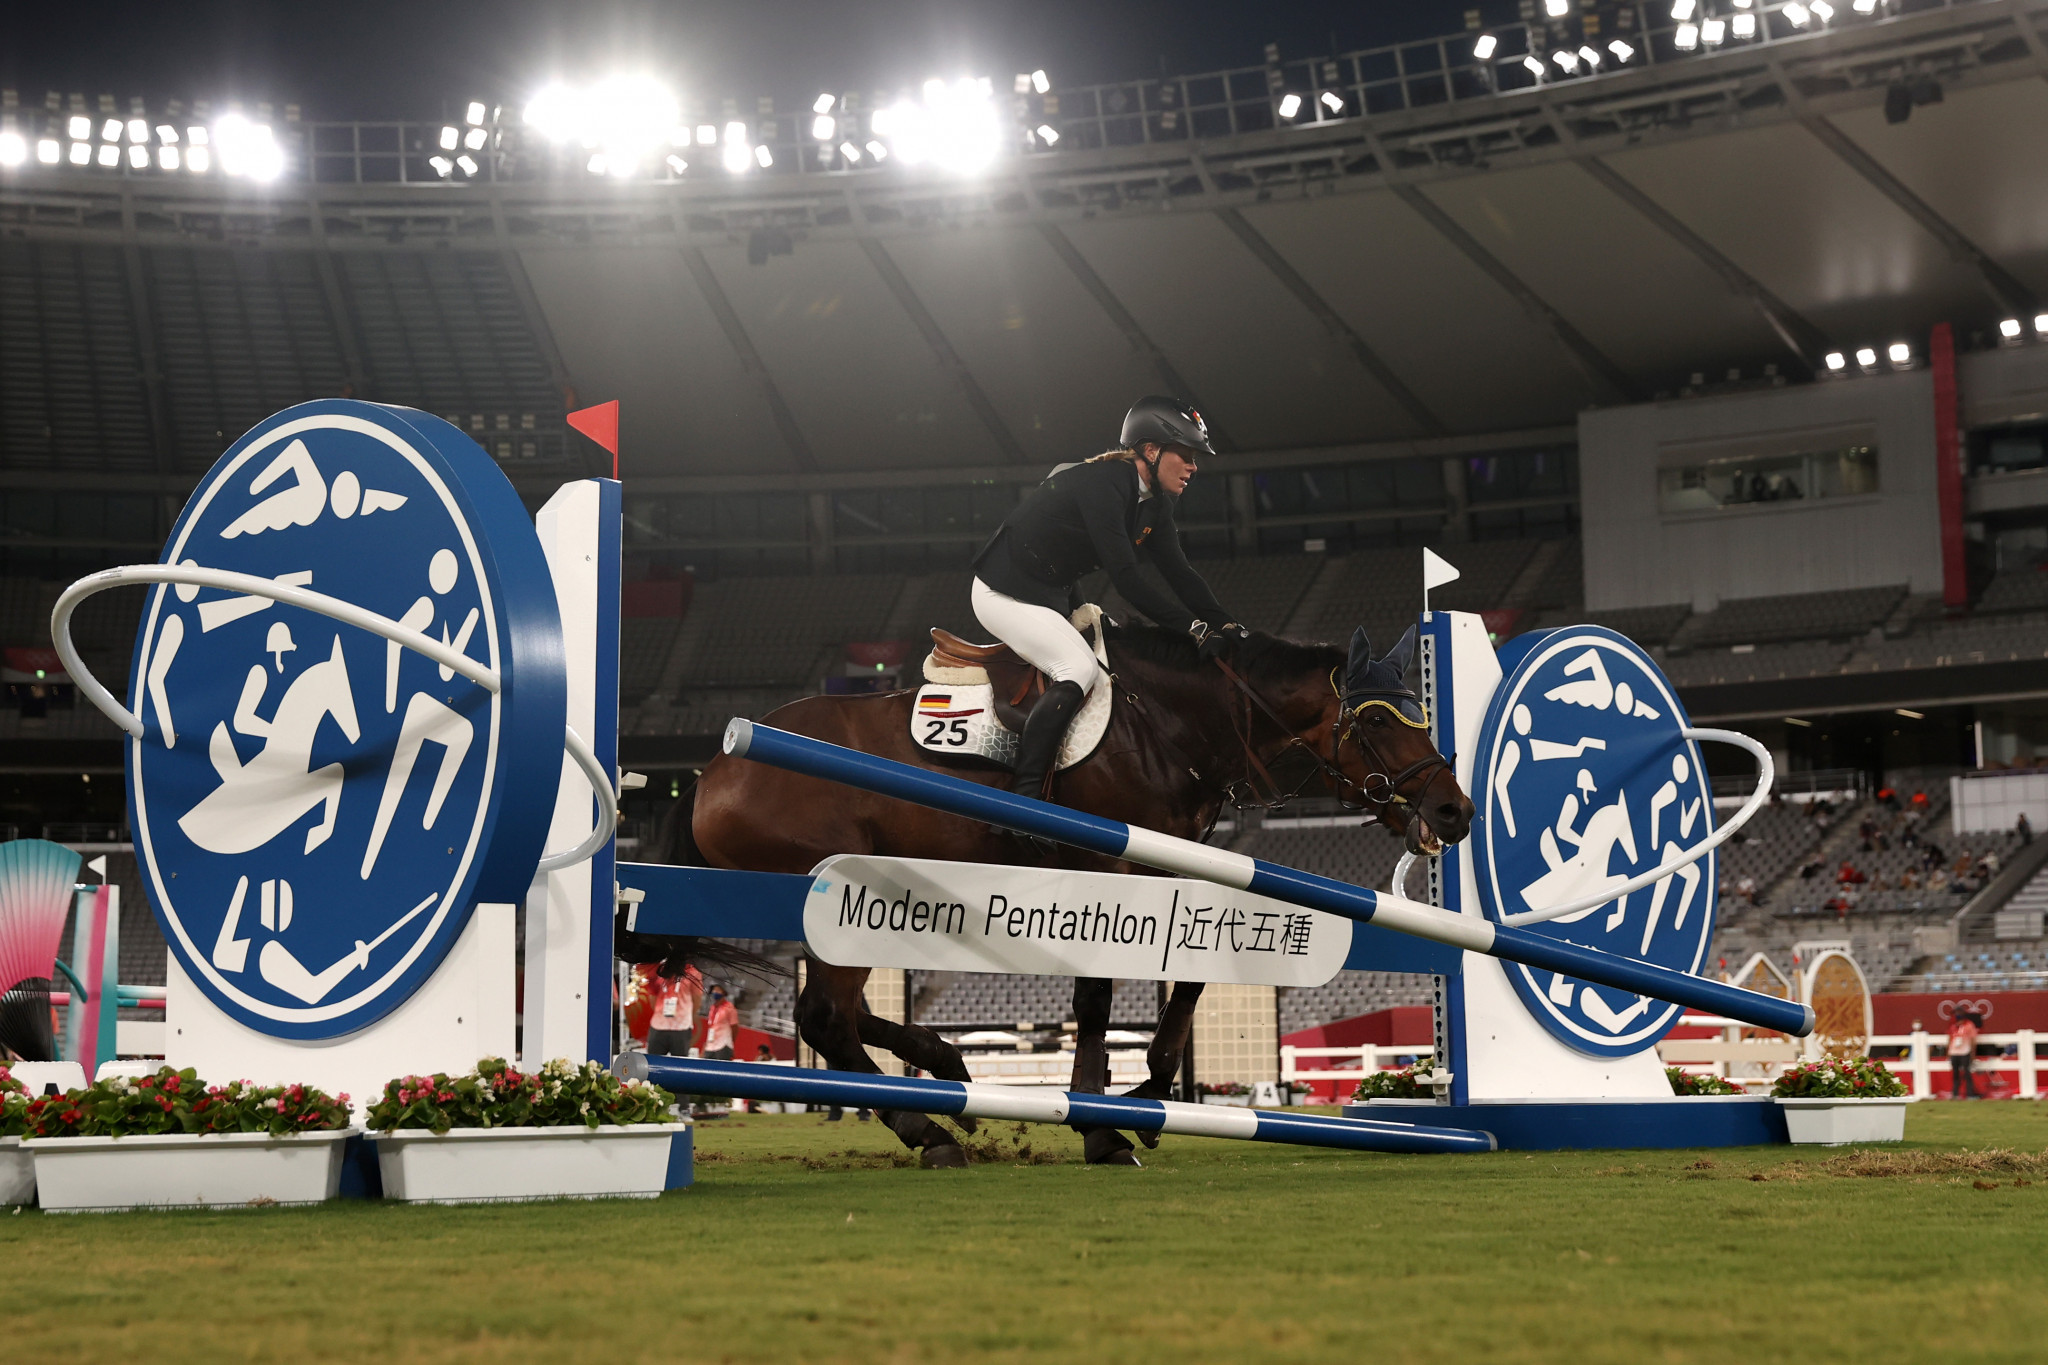 UIPM to set up Riding Working Group and will meet FEI in wake of Tokyo 2020 horse-abuse scandal